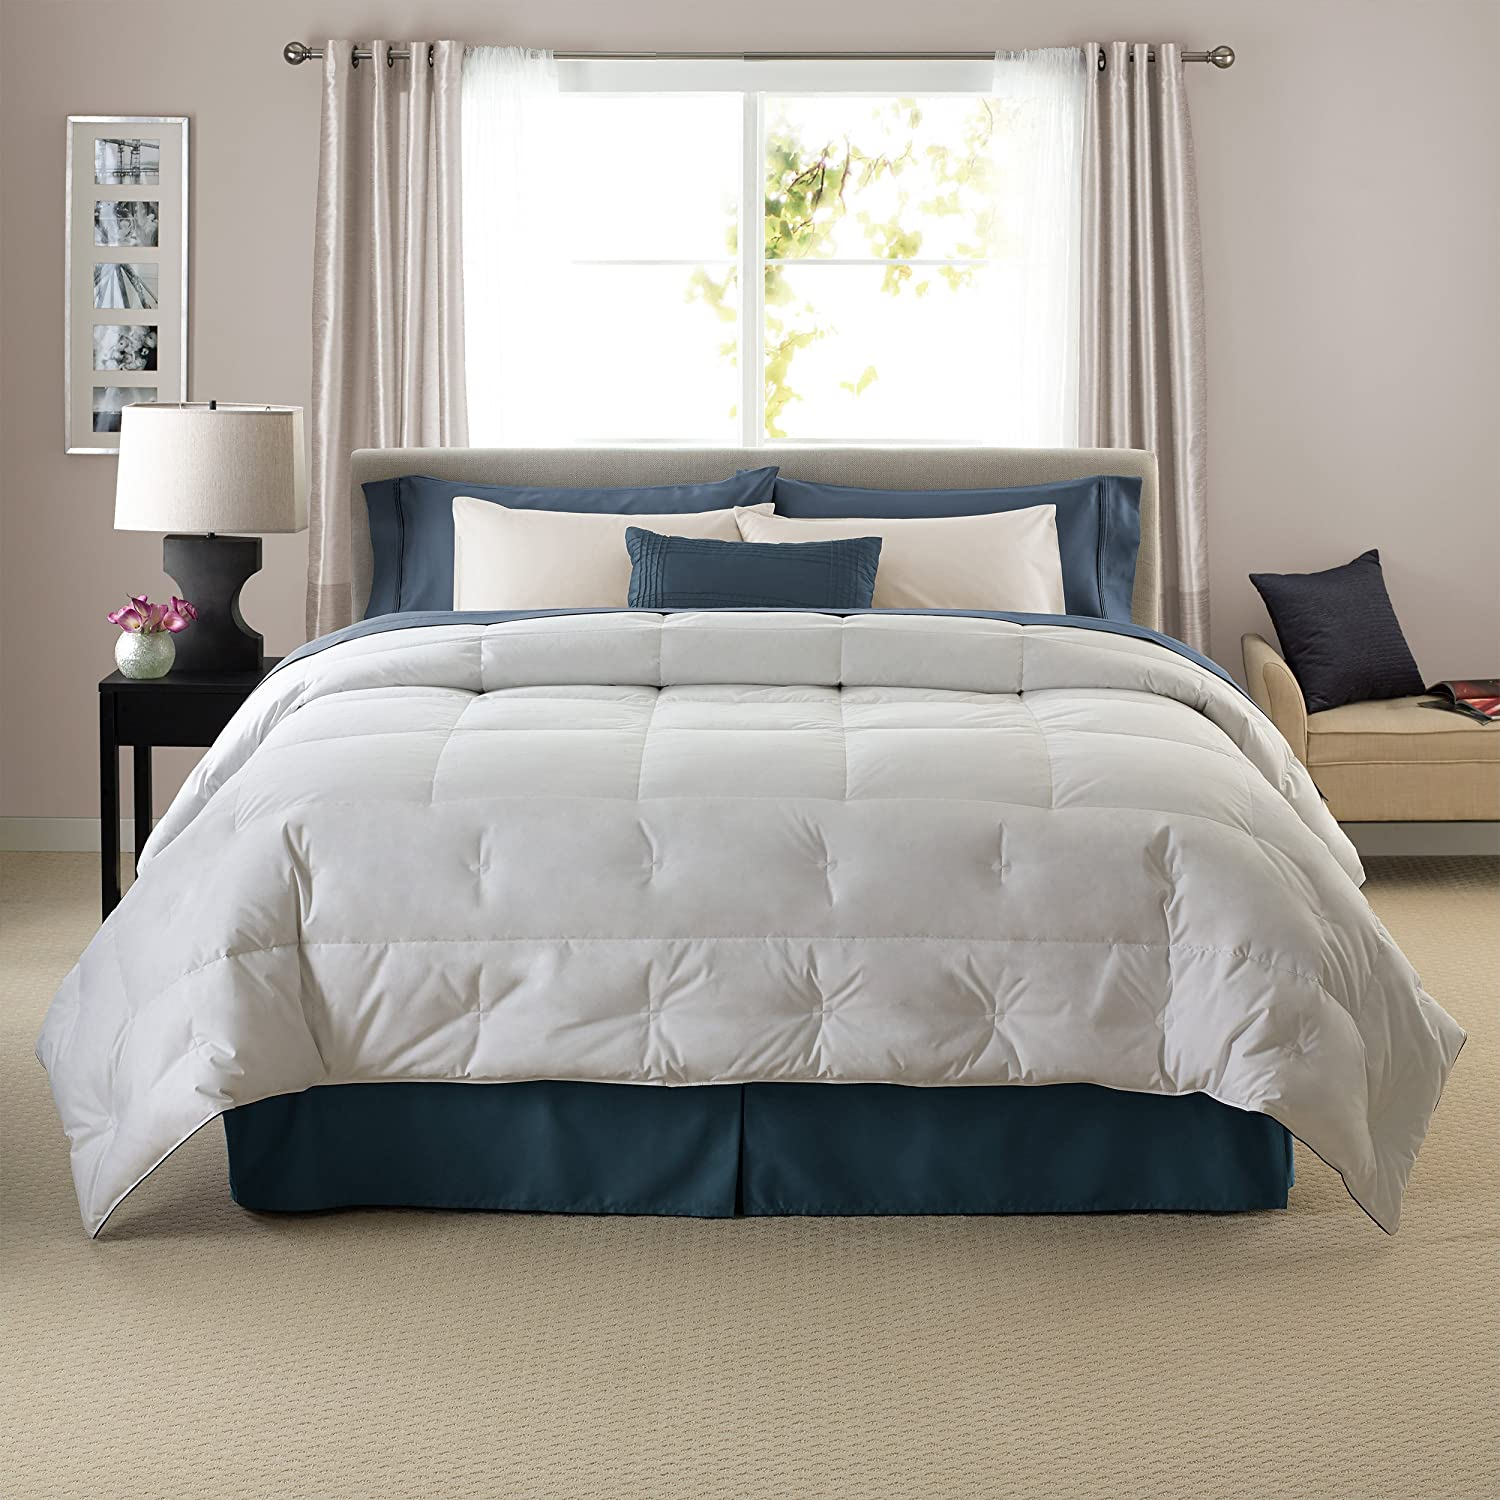 duvet cozy comfort noble down comforter lightweight pacific coast comforters rc summer goose diverting macys alternative fear reversible